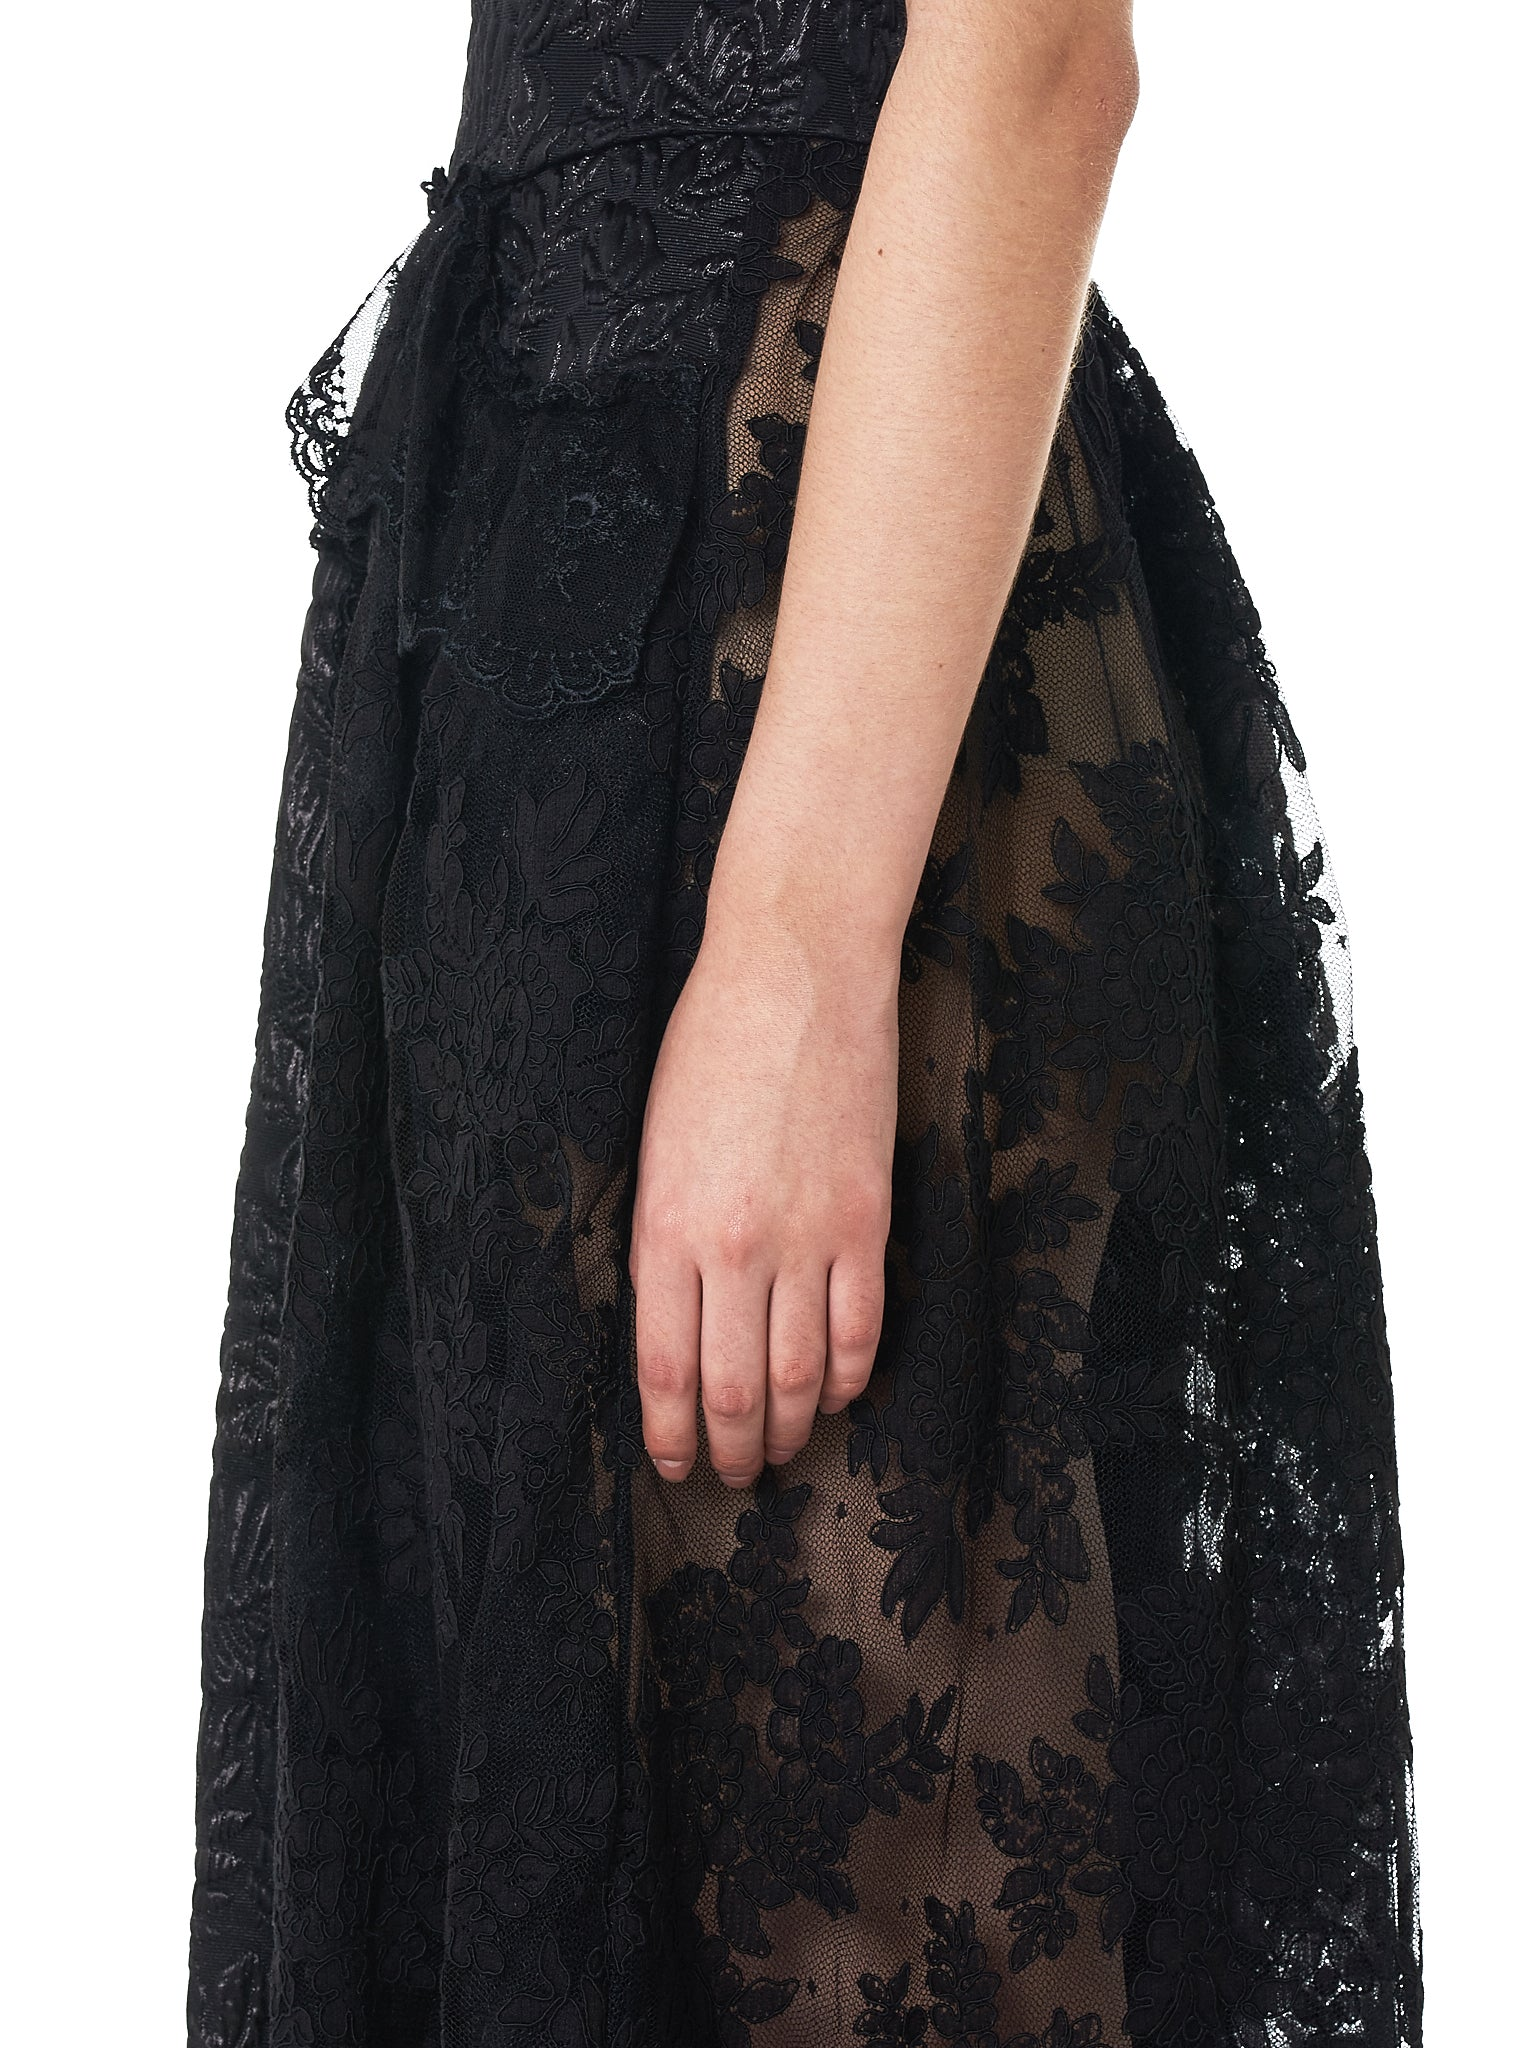 Simone Rocha Dress - Hlorenzo Detail 3